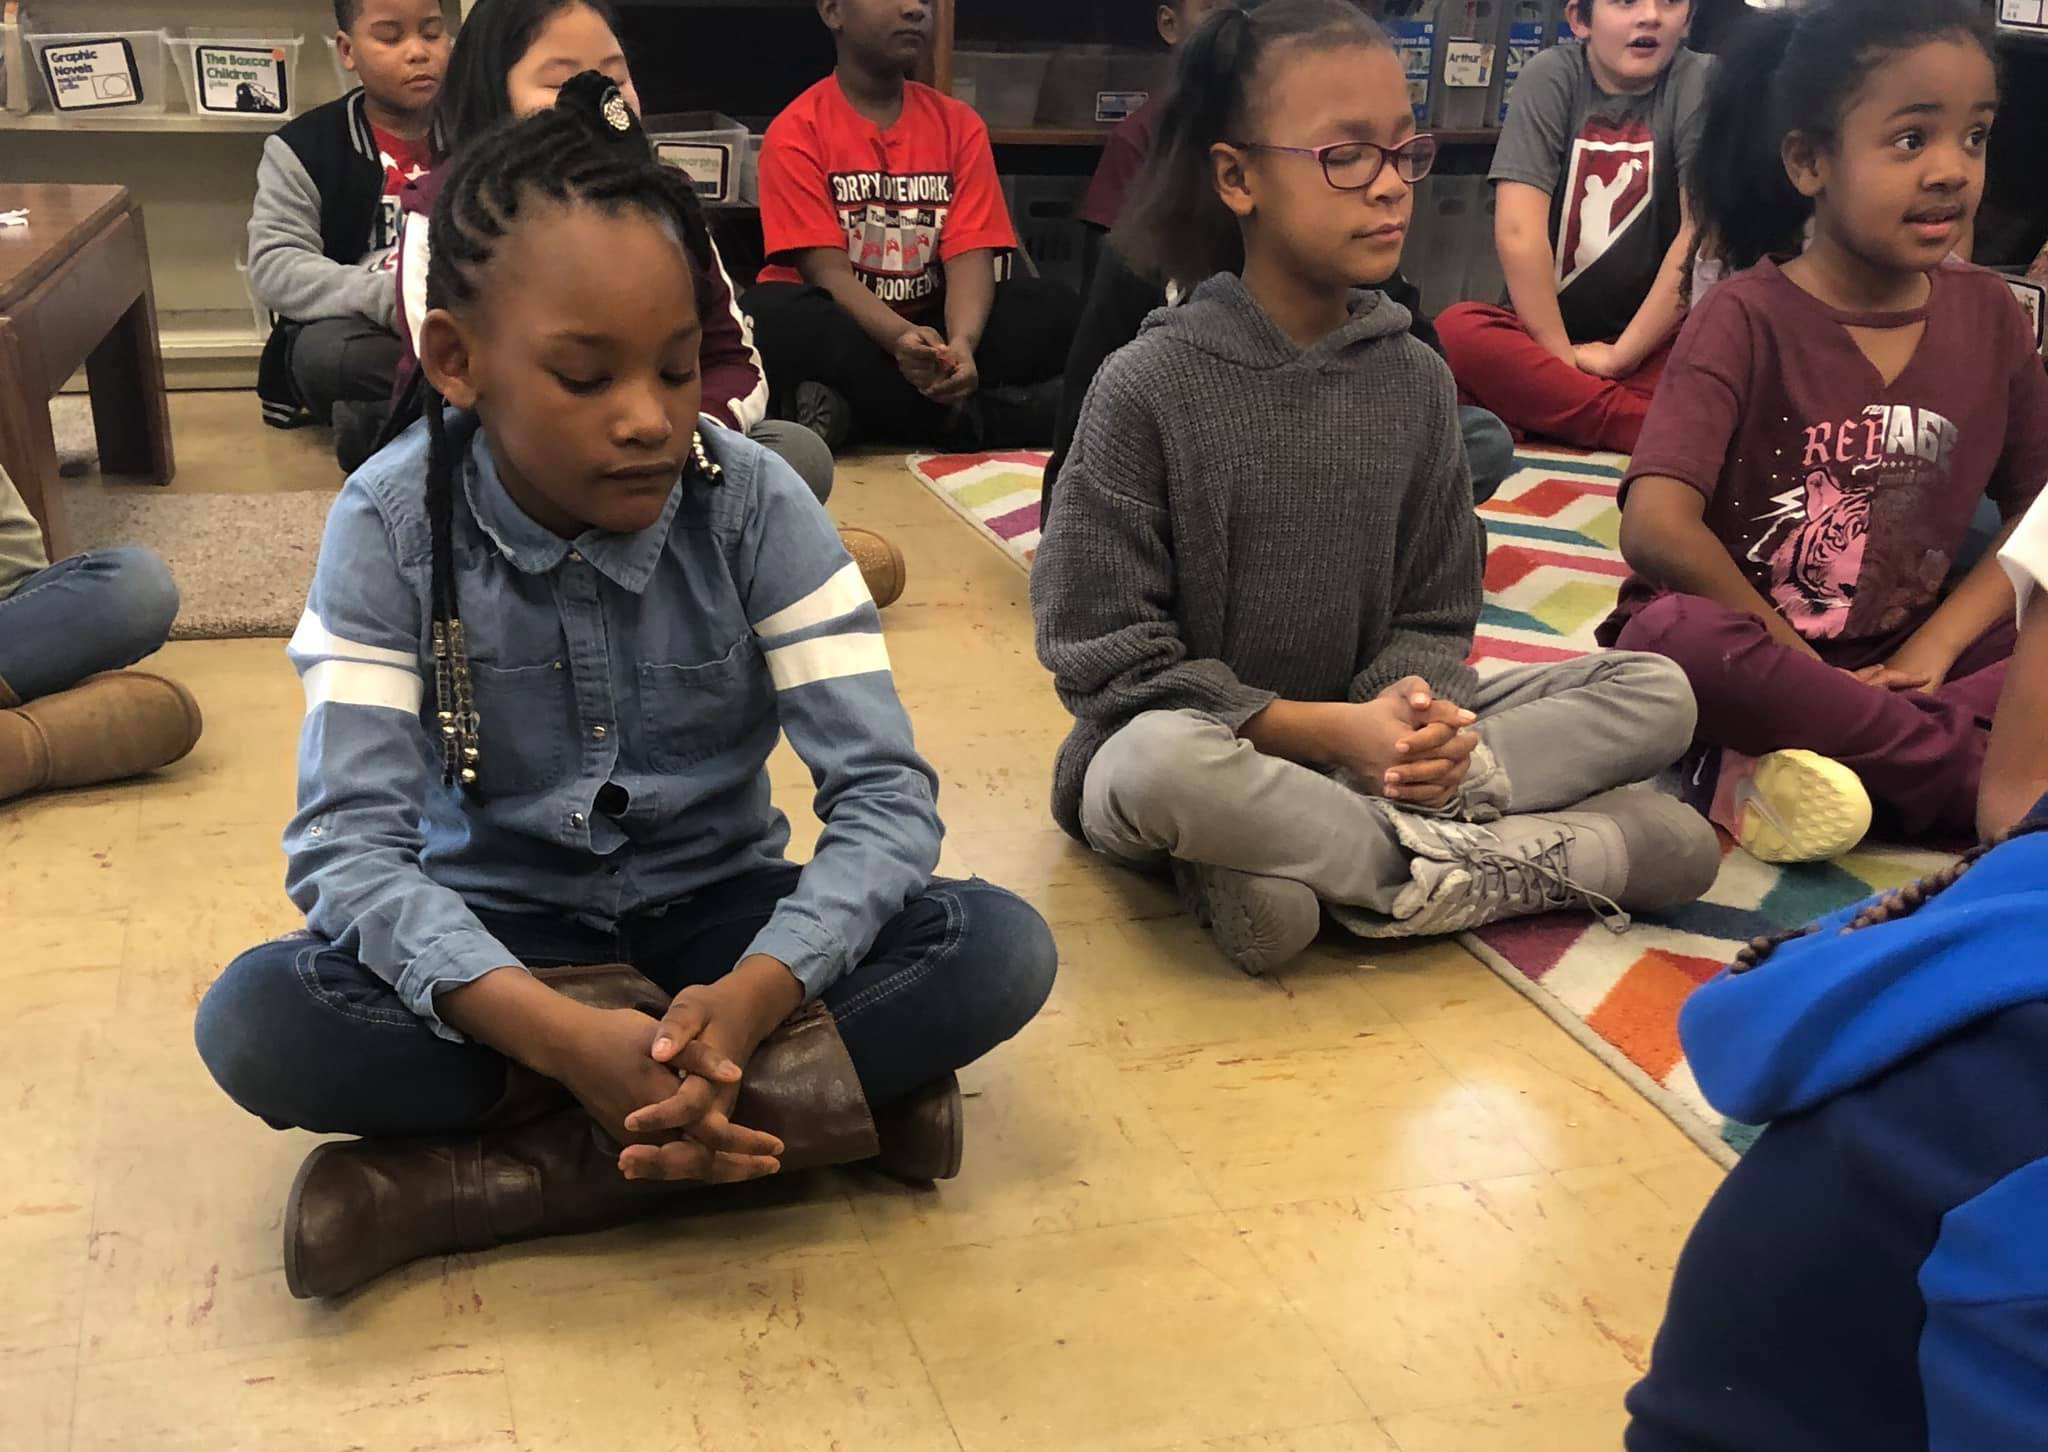 Mastering Mindful Bodies with inMind - This is a great program - helping me every day in my life and in class. I have tools to manage my anxiety by using the heartfulness, kind-thought meditation and I share this practice with the students.- Nancy, Pleasantview Elementary School Teacher,, January 2019